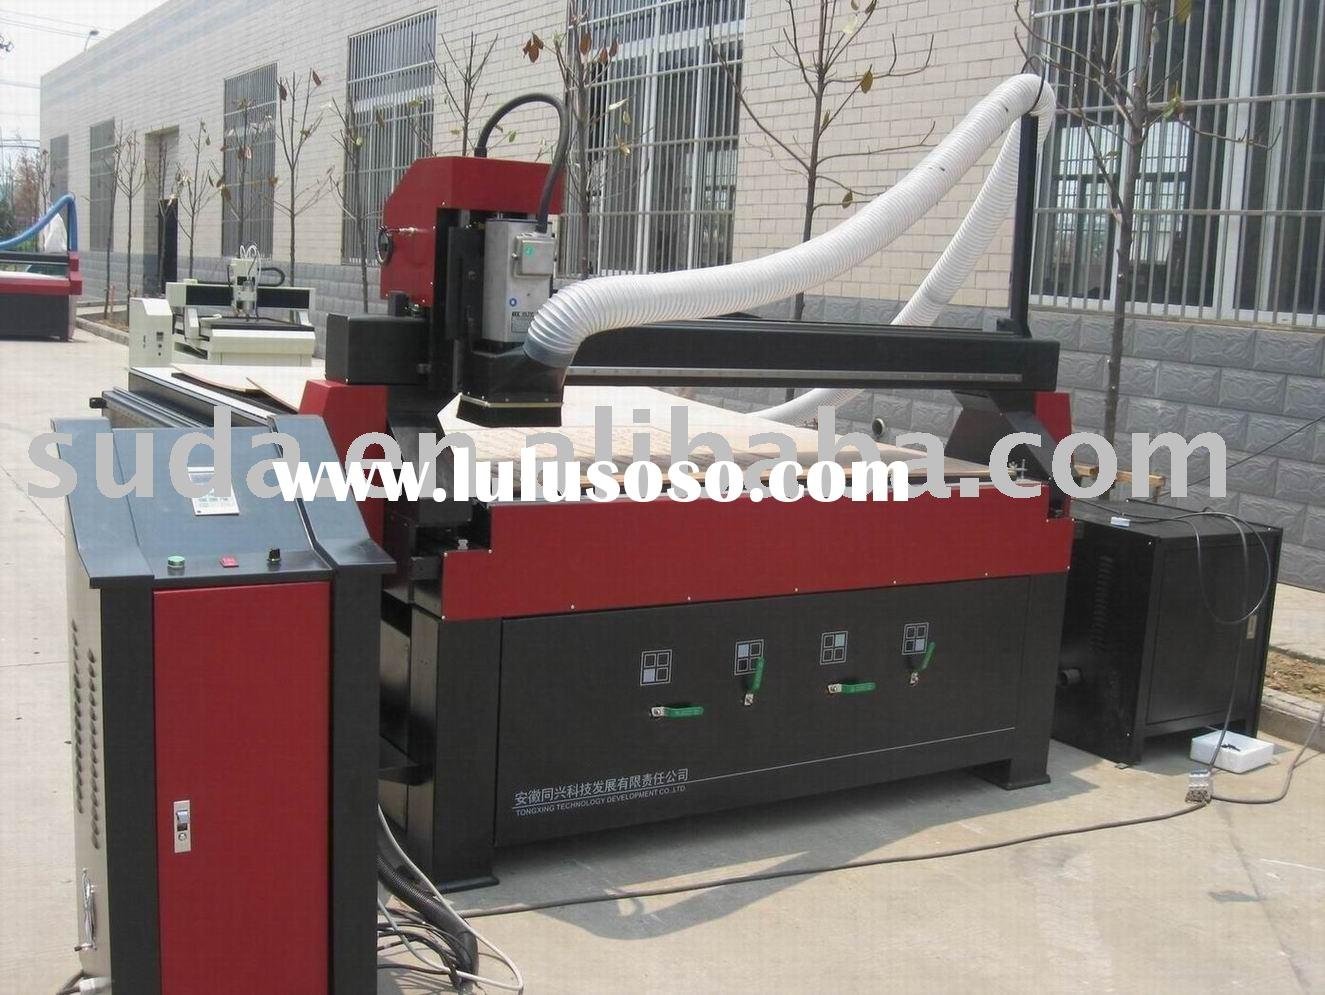 SUDA China CNC Router supplier ,woodworking machine ,wood cutting machine ,wood cnc router ----SV163